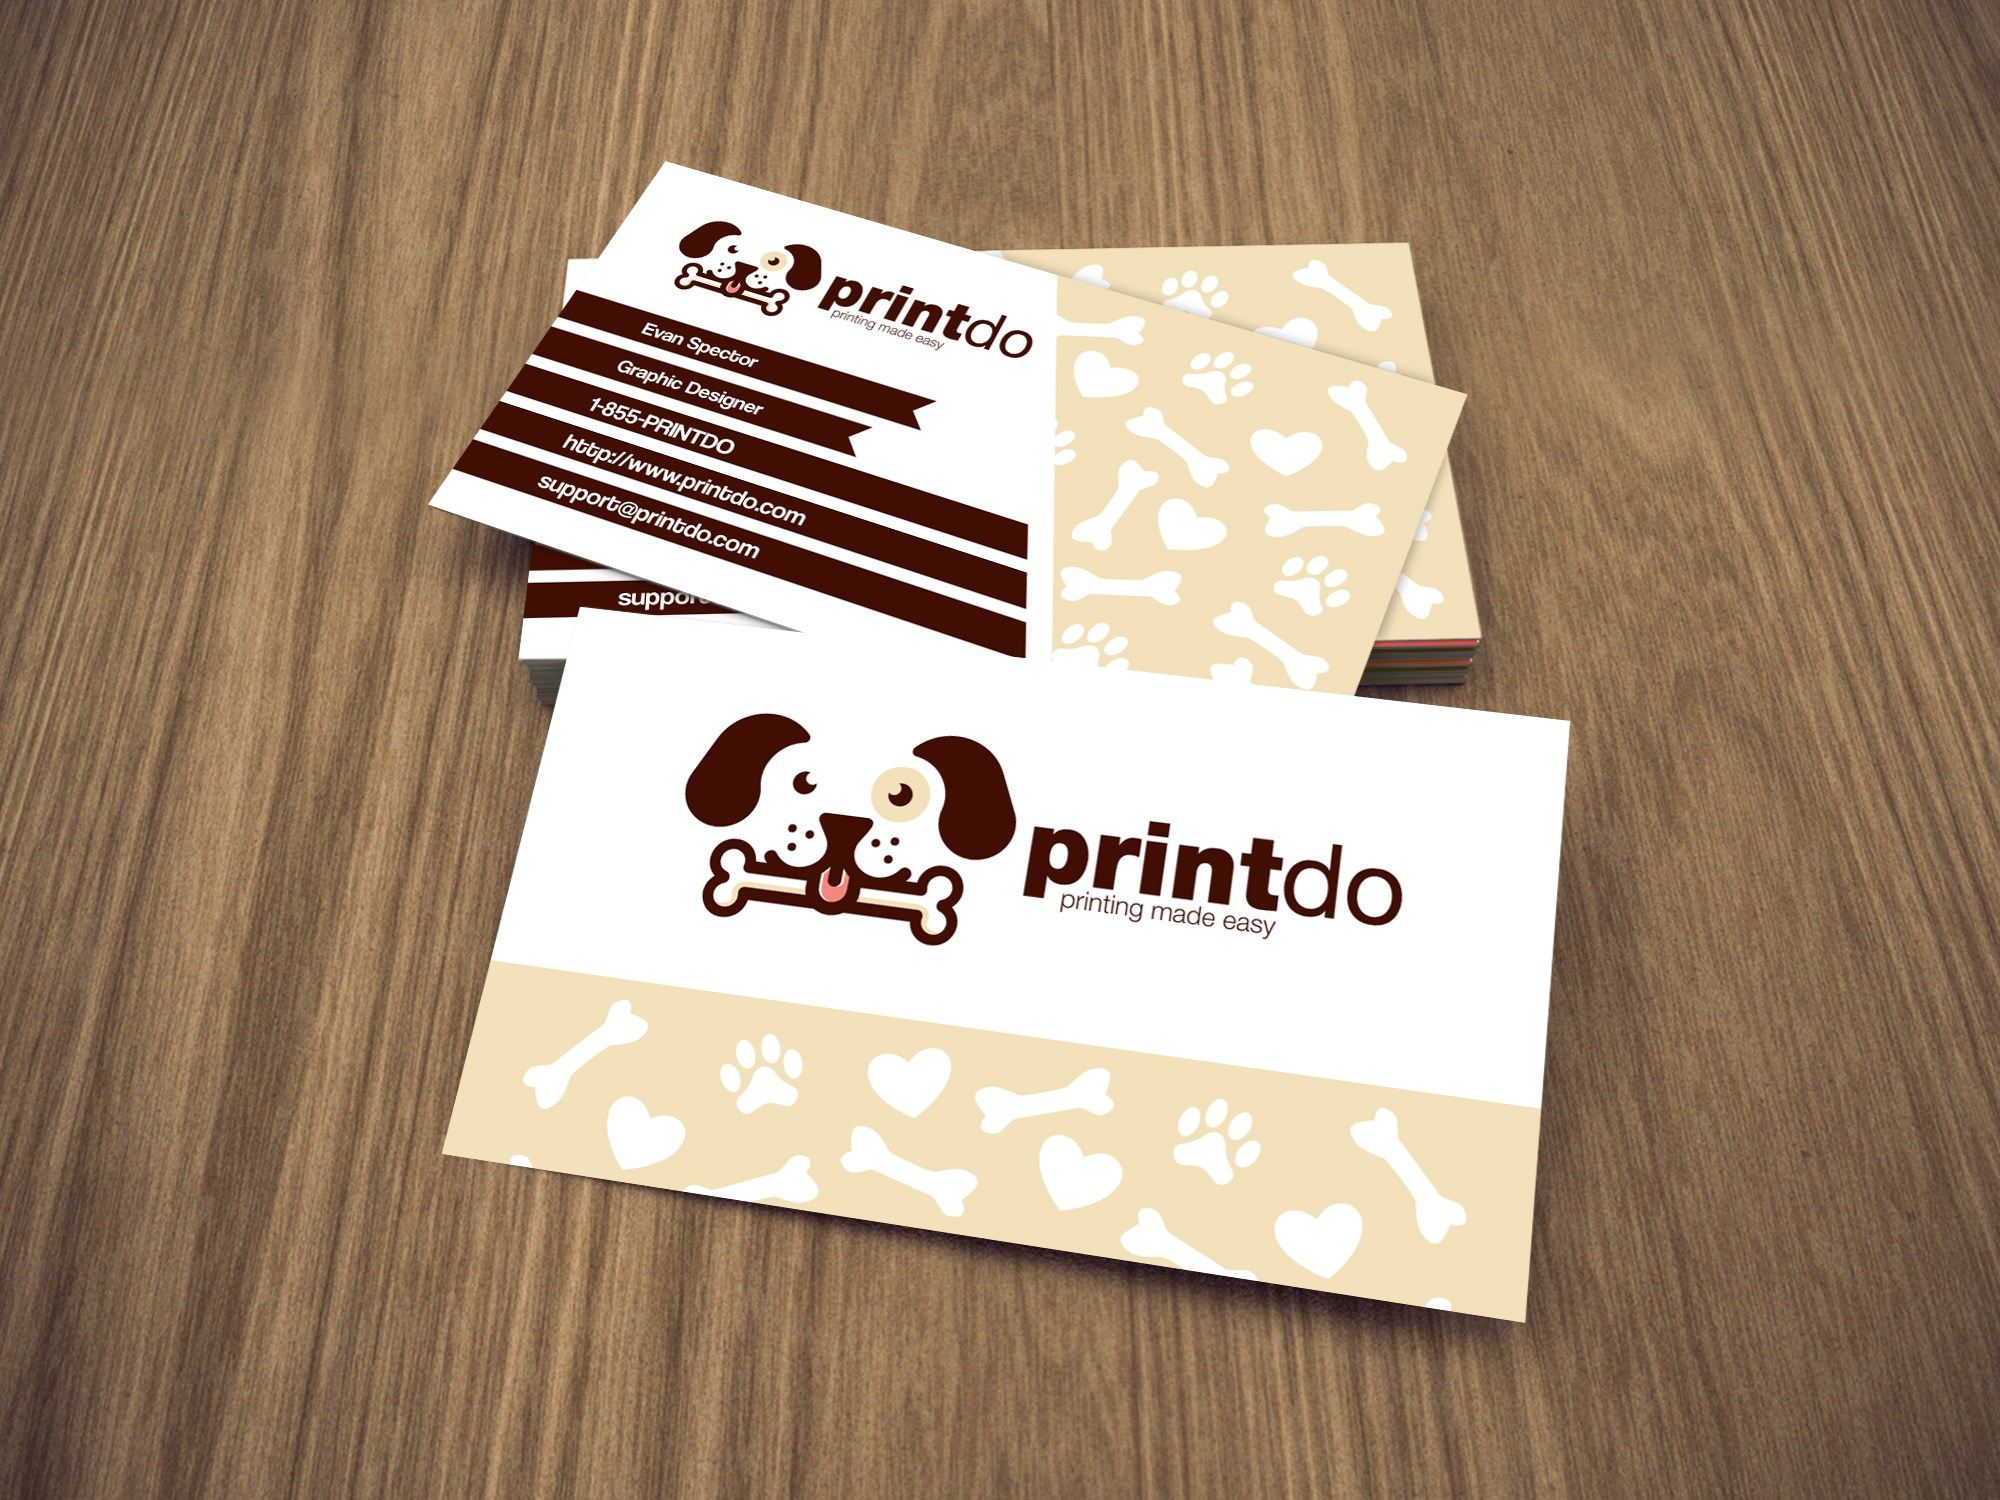 Pet shop business card google search business cards for Pet business cards